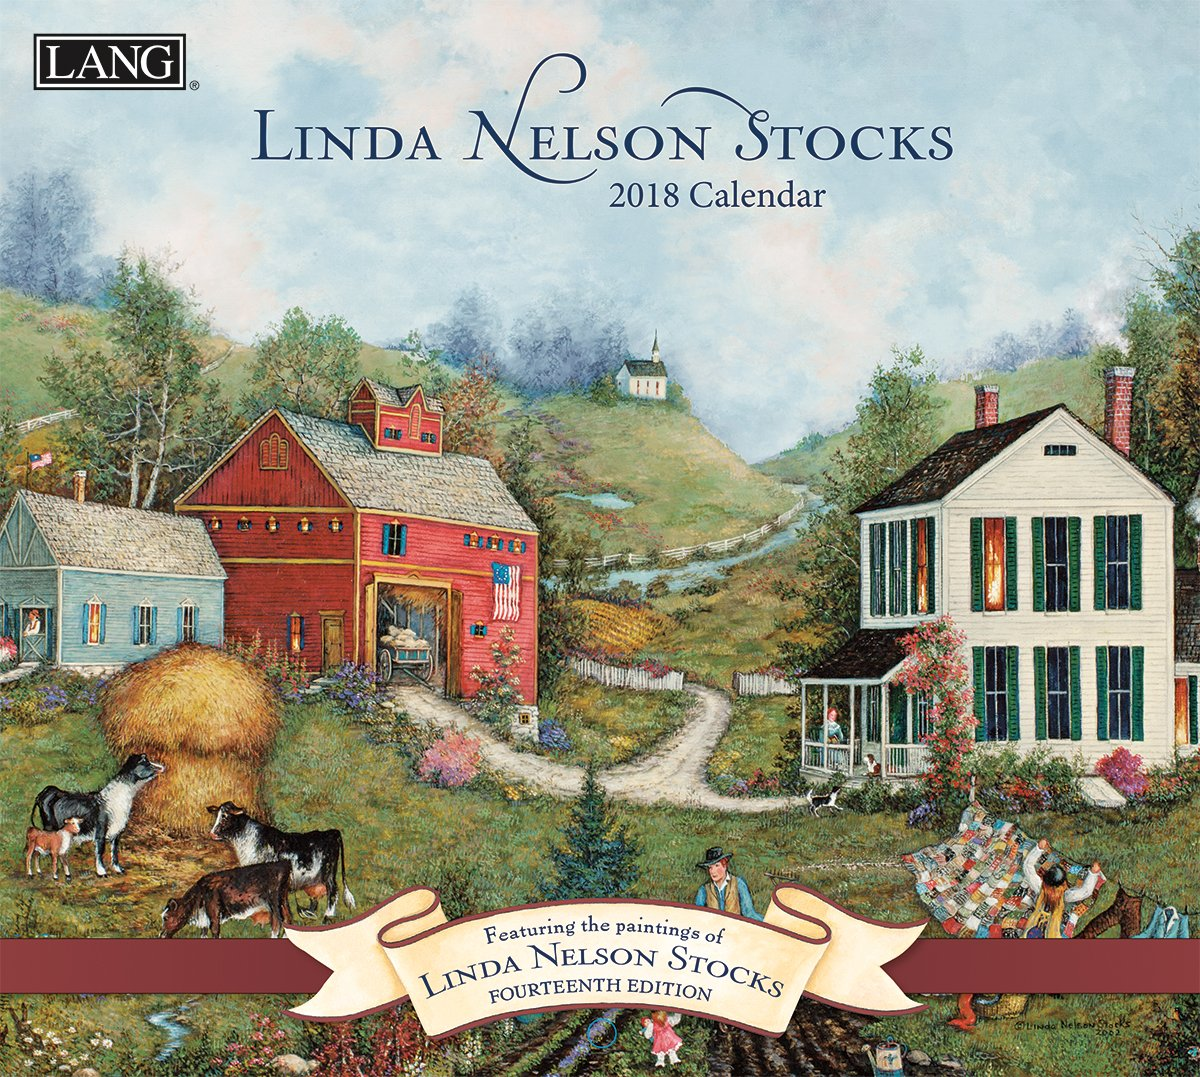 Lang - 2018 Wall Calendar -''Linda Nelson Stocks'', Artwork by Linda Nelson Stocks - 12 Month - Open 13 3/8'' X 24''